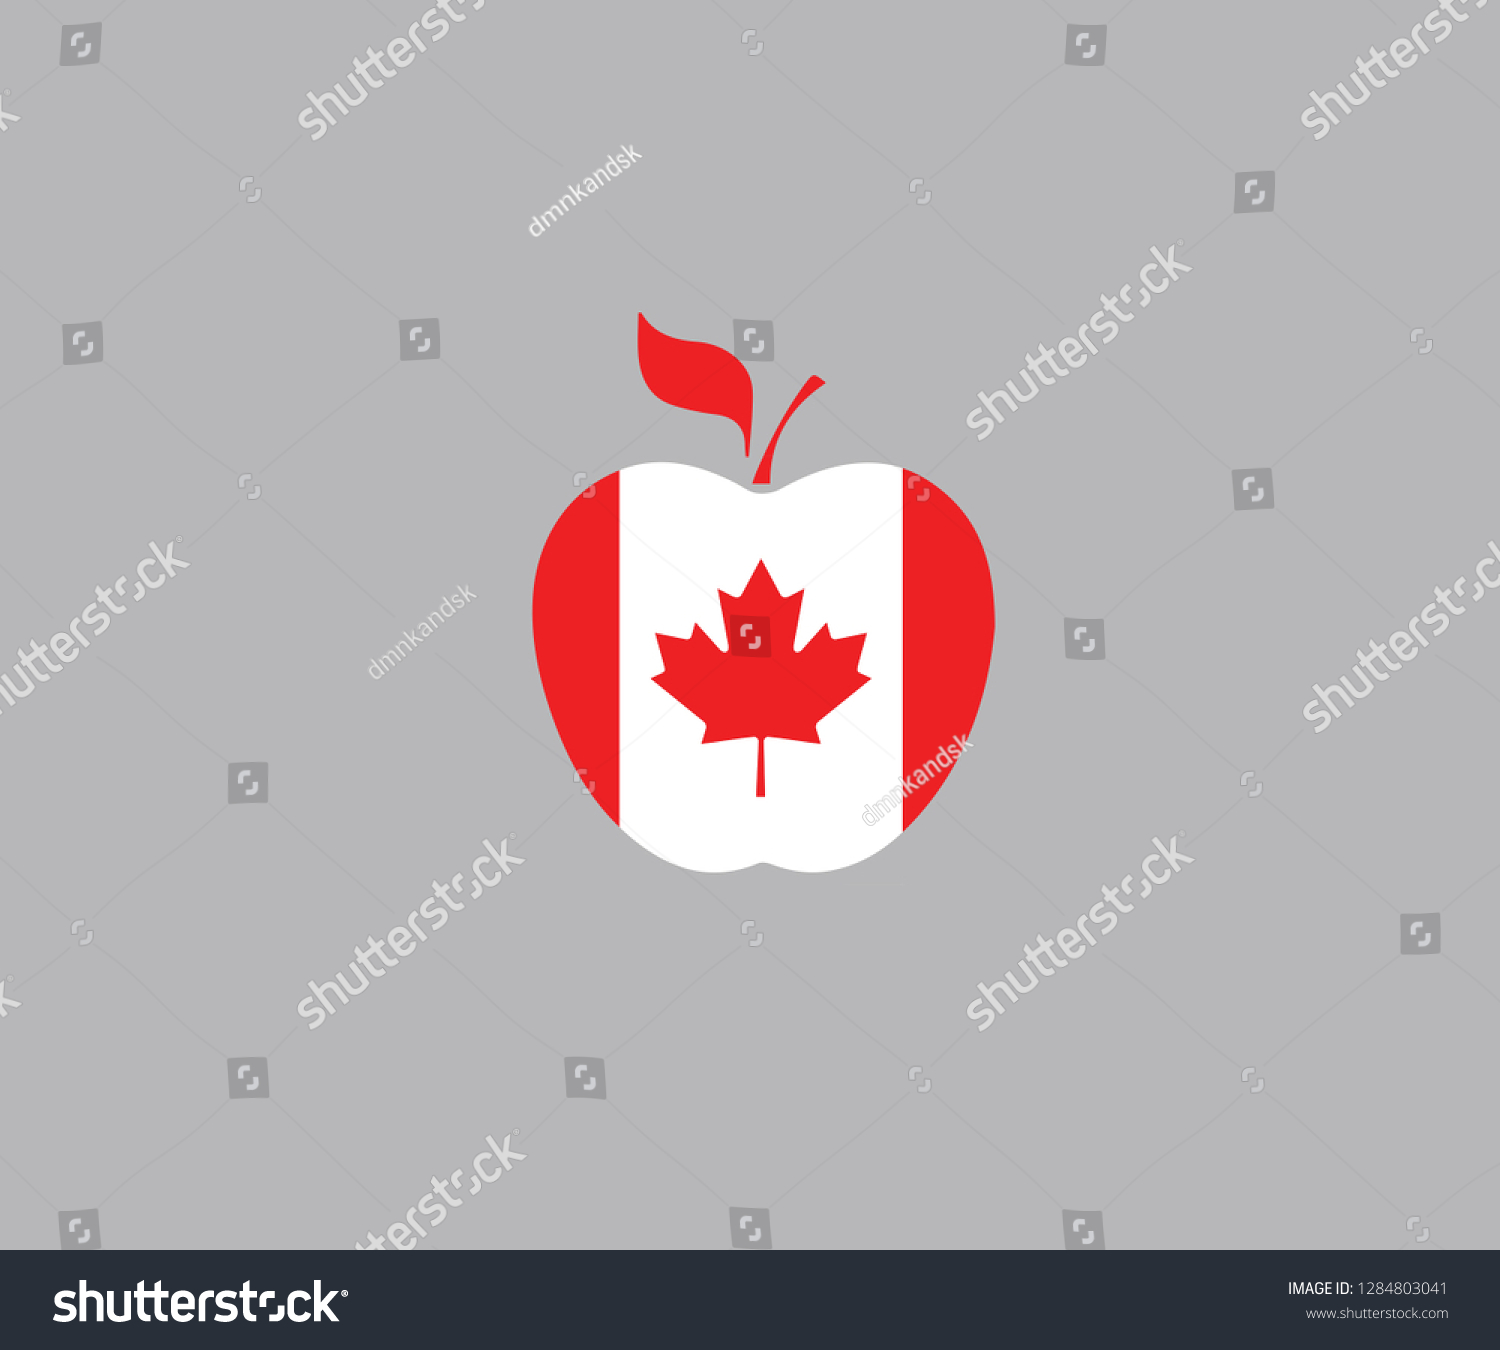 Canada National Flag Apple Symbol Decoration Stock Vector (Royalty